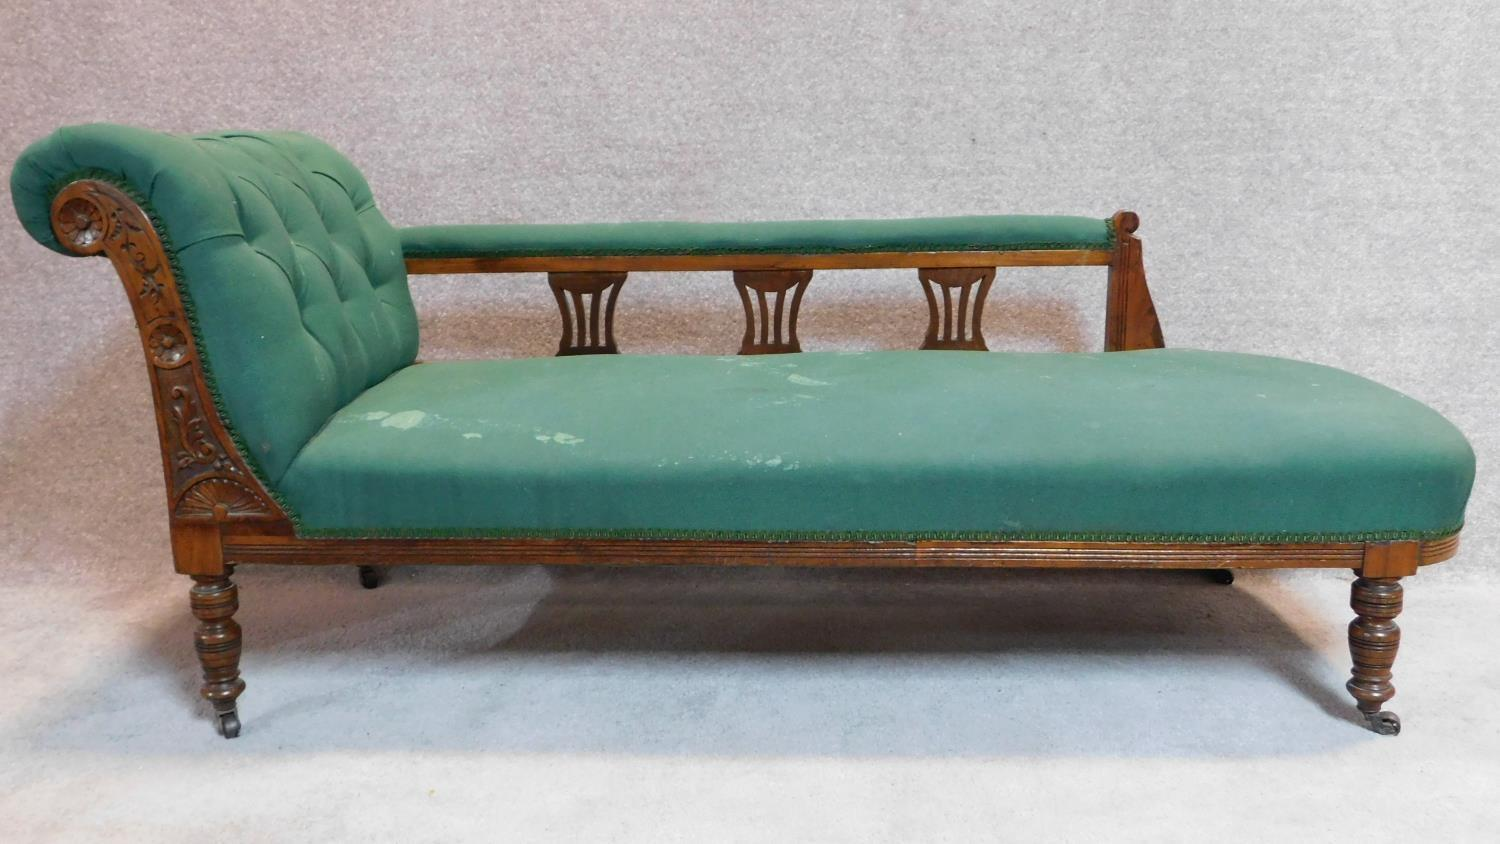 Lot 21 - A late Victorian walnut framed chaise longue in green upholstery on turned supports. 75x165x67cm